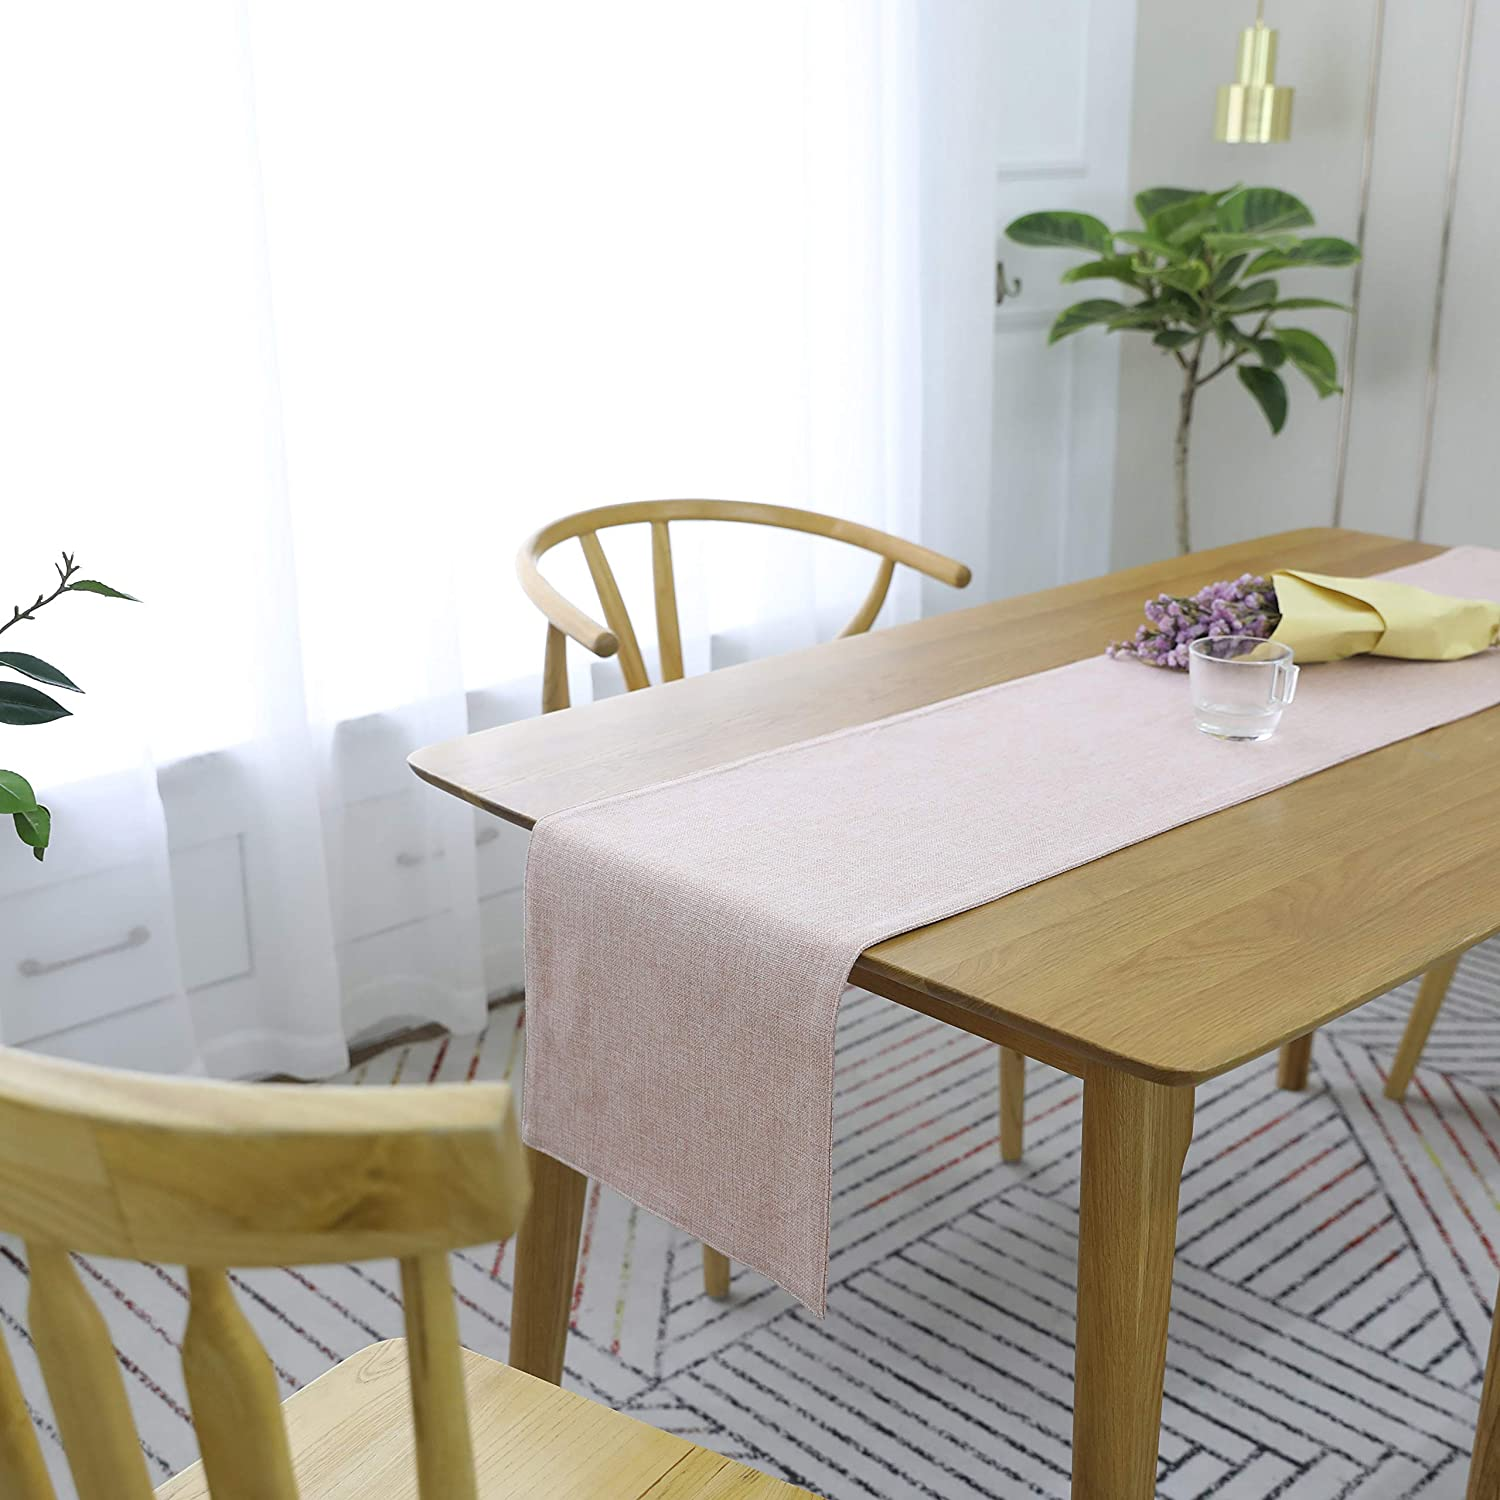 HOME BRILLIANT Burlap Table Runner Dresser Scarf Imitated Linen Table Runners 12 x 72 Inch for Parties Holidays and Daily Use, Pink